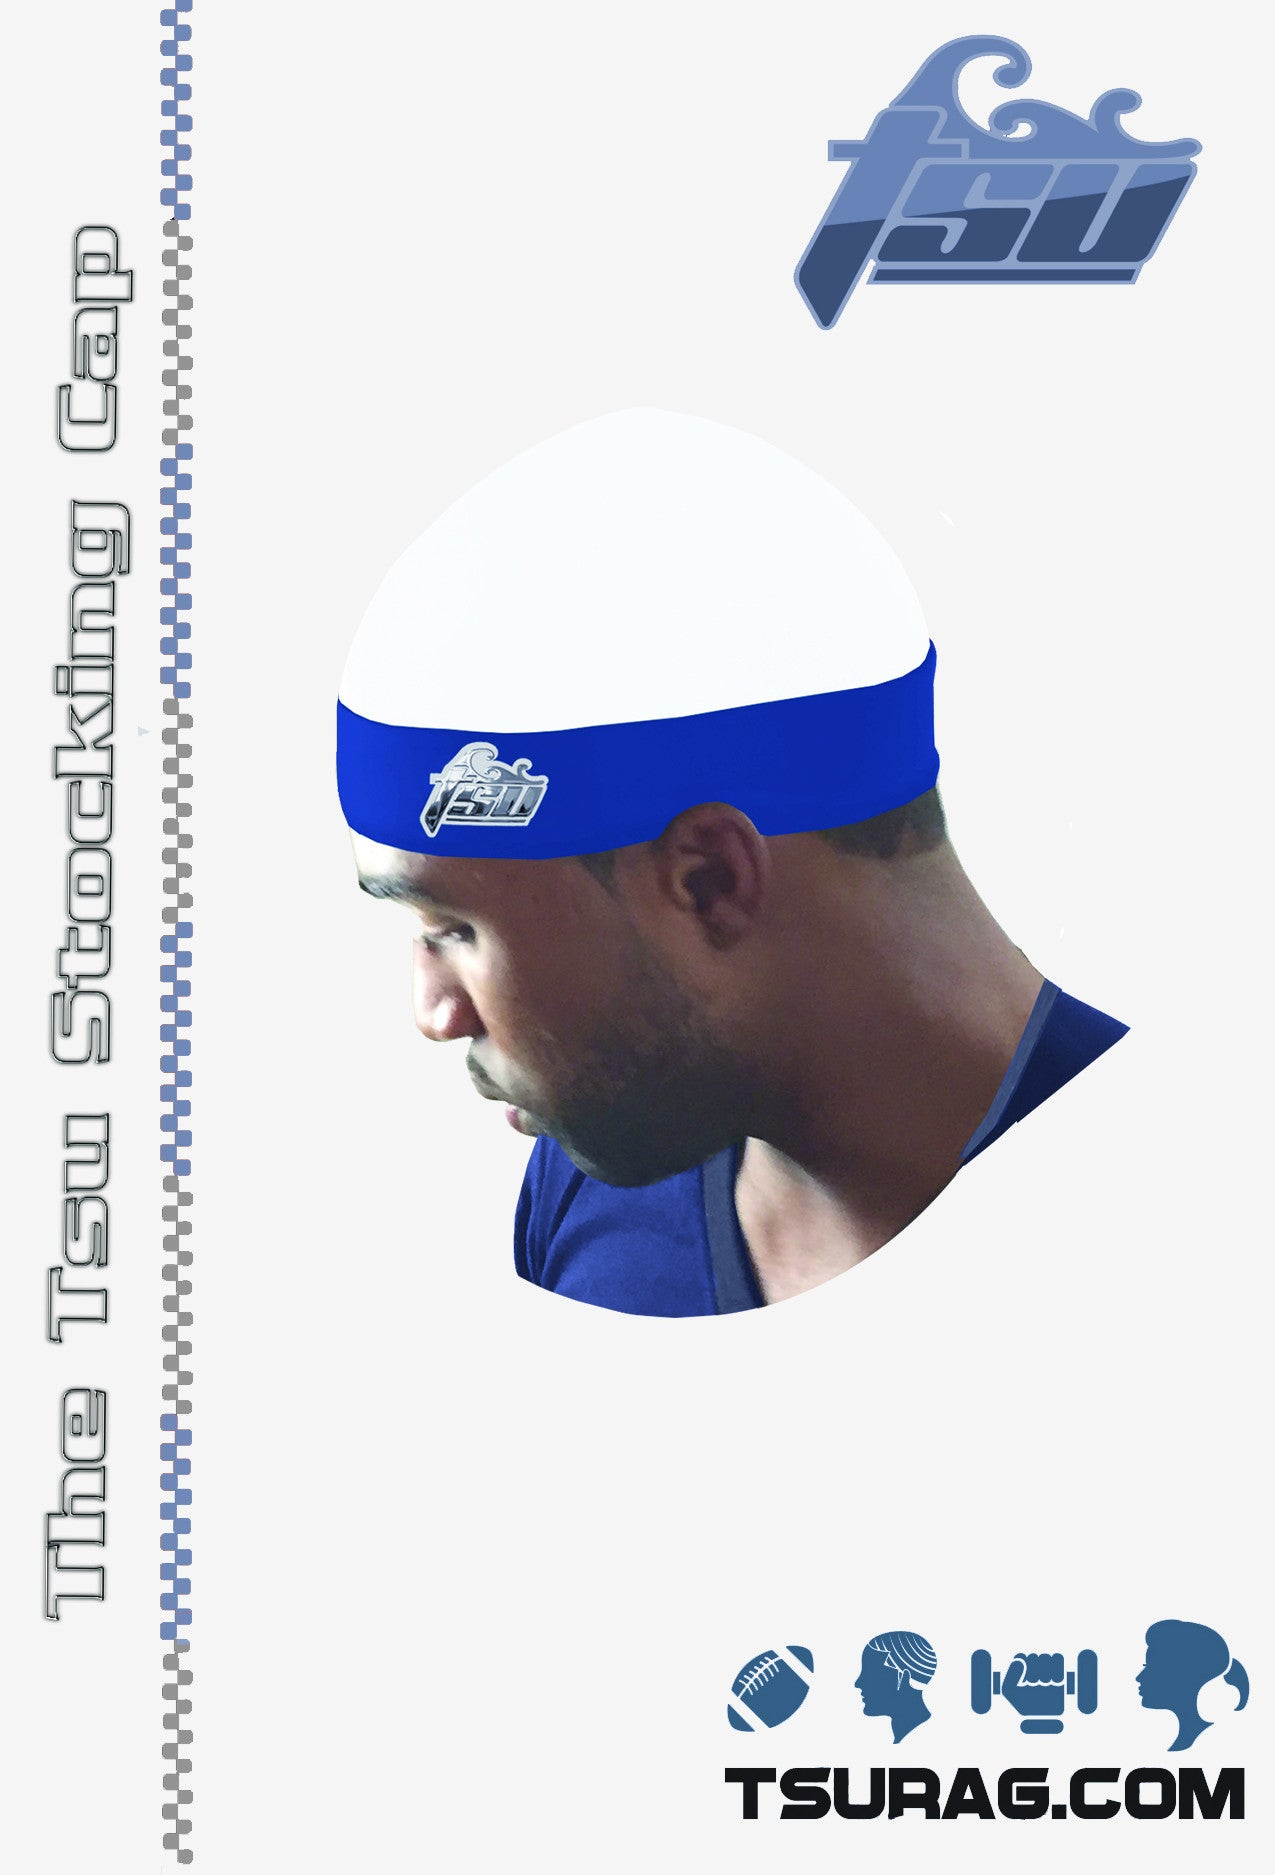 Tsu Stocking Caps - TsuRag.com - 1